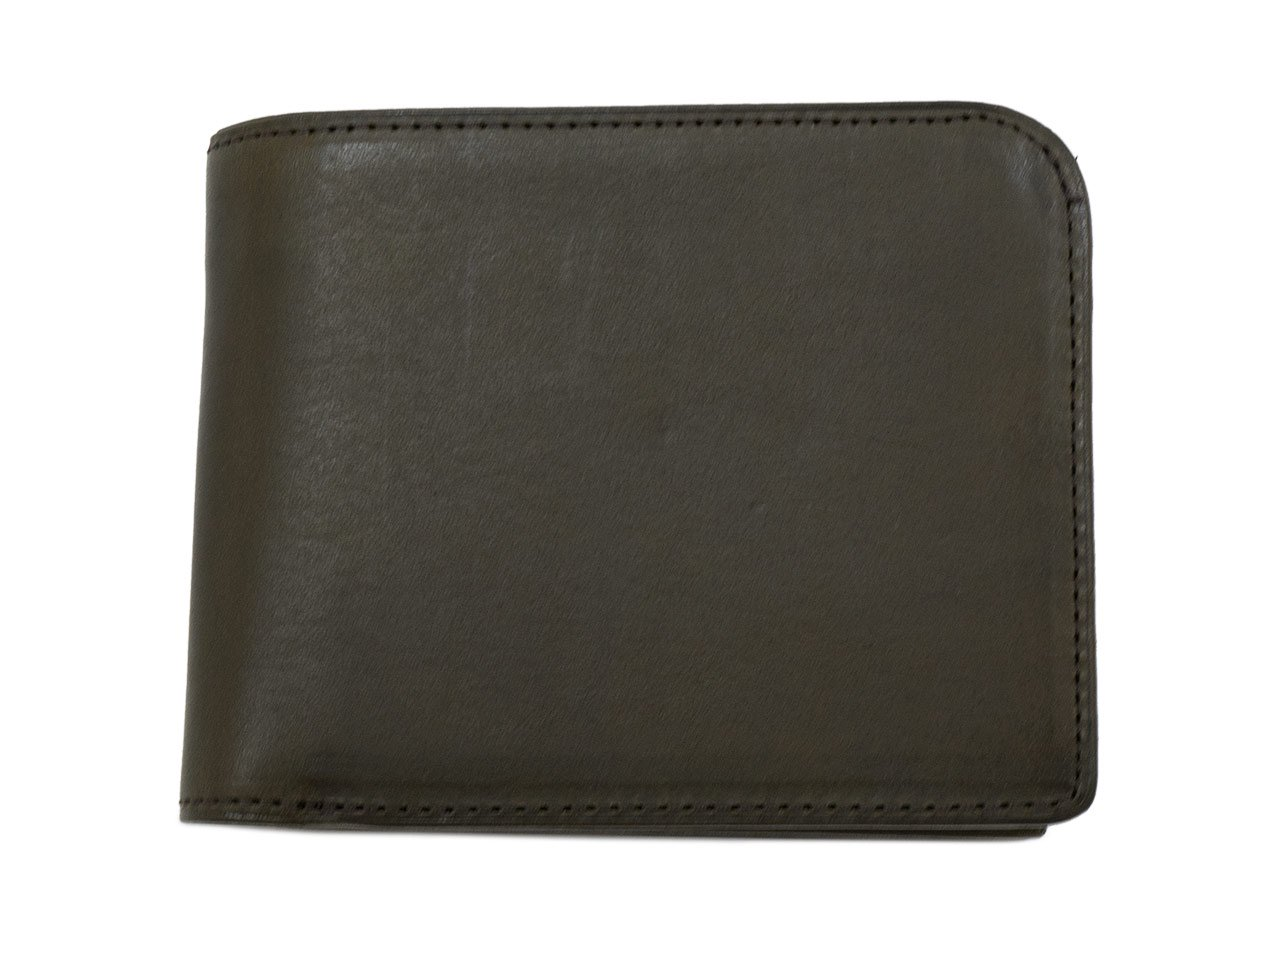 MARGARET HOWELL x PORTER OIL LEATHER FOLDED WALLET 182OLIVE